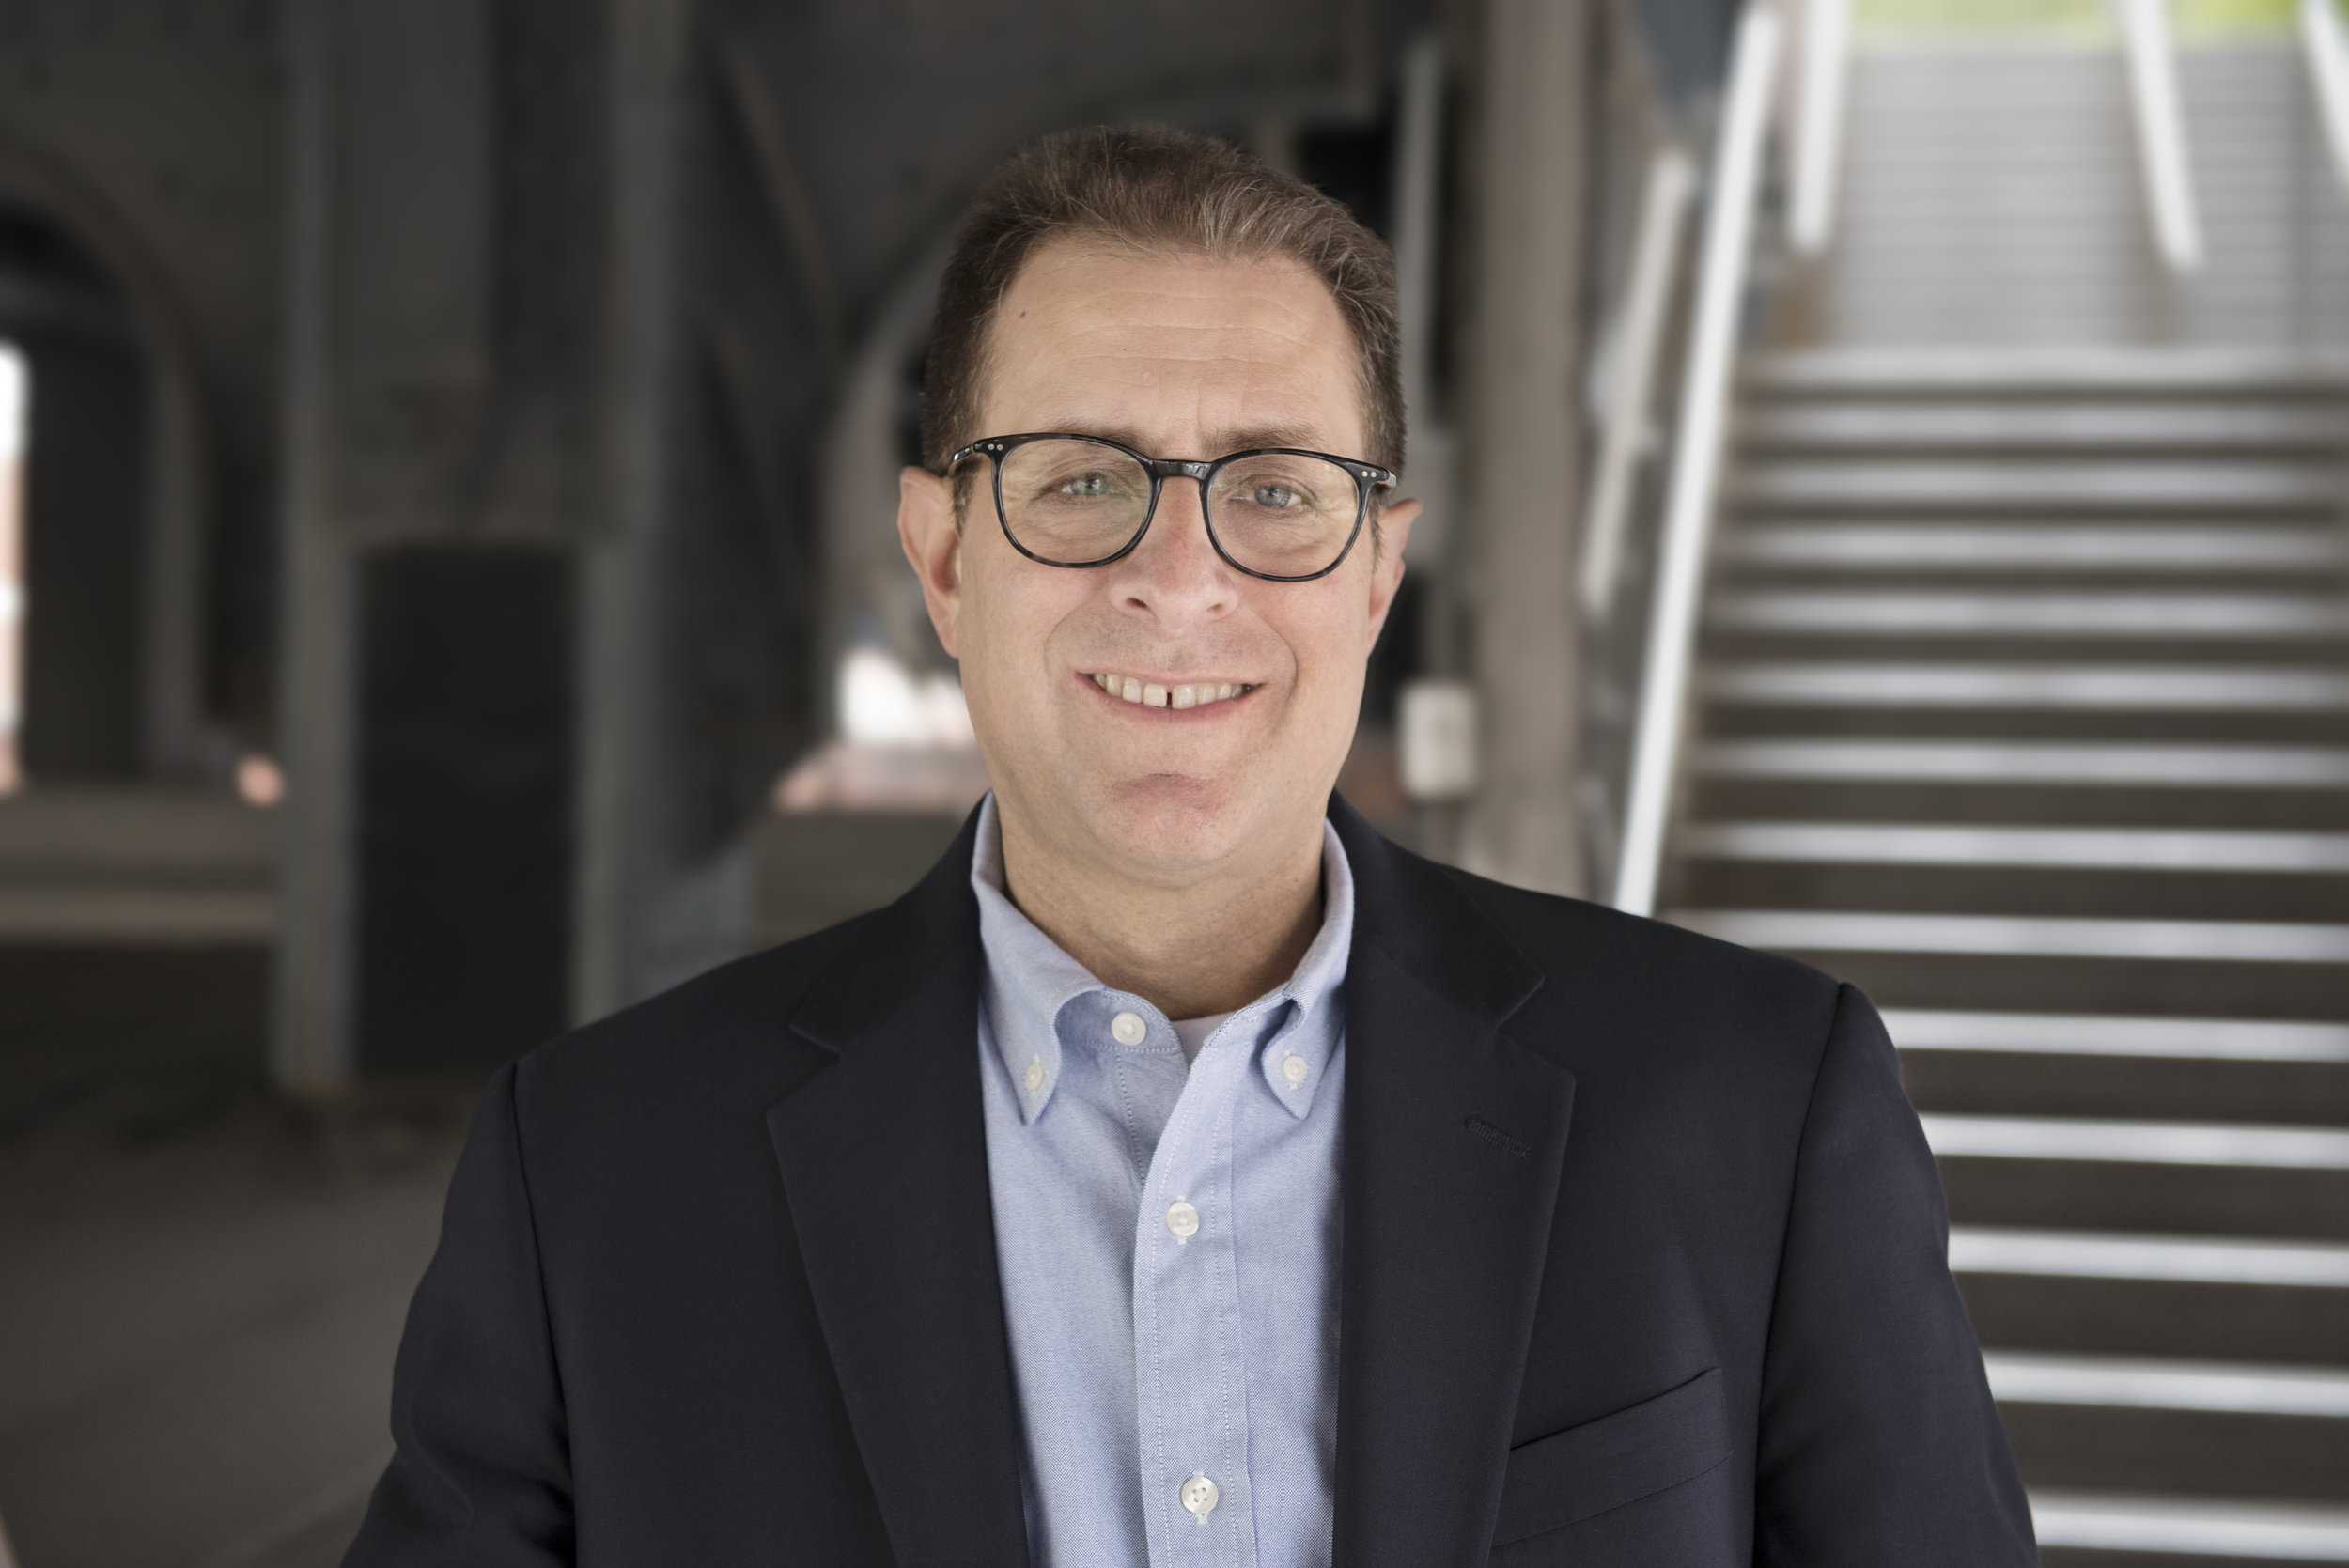 Policing Project Director Barry Friedman